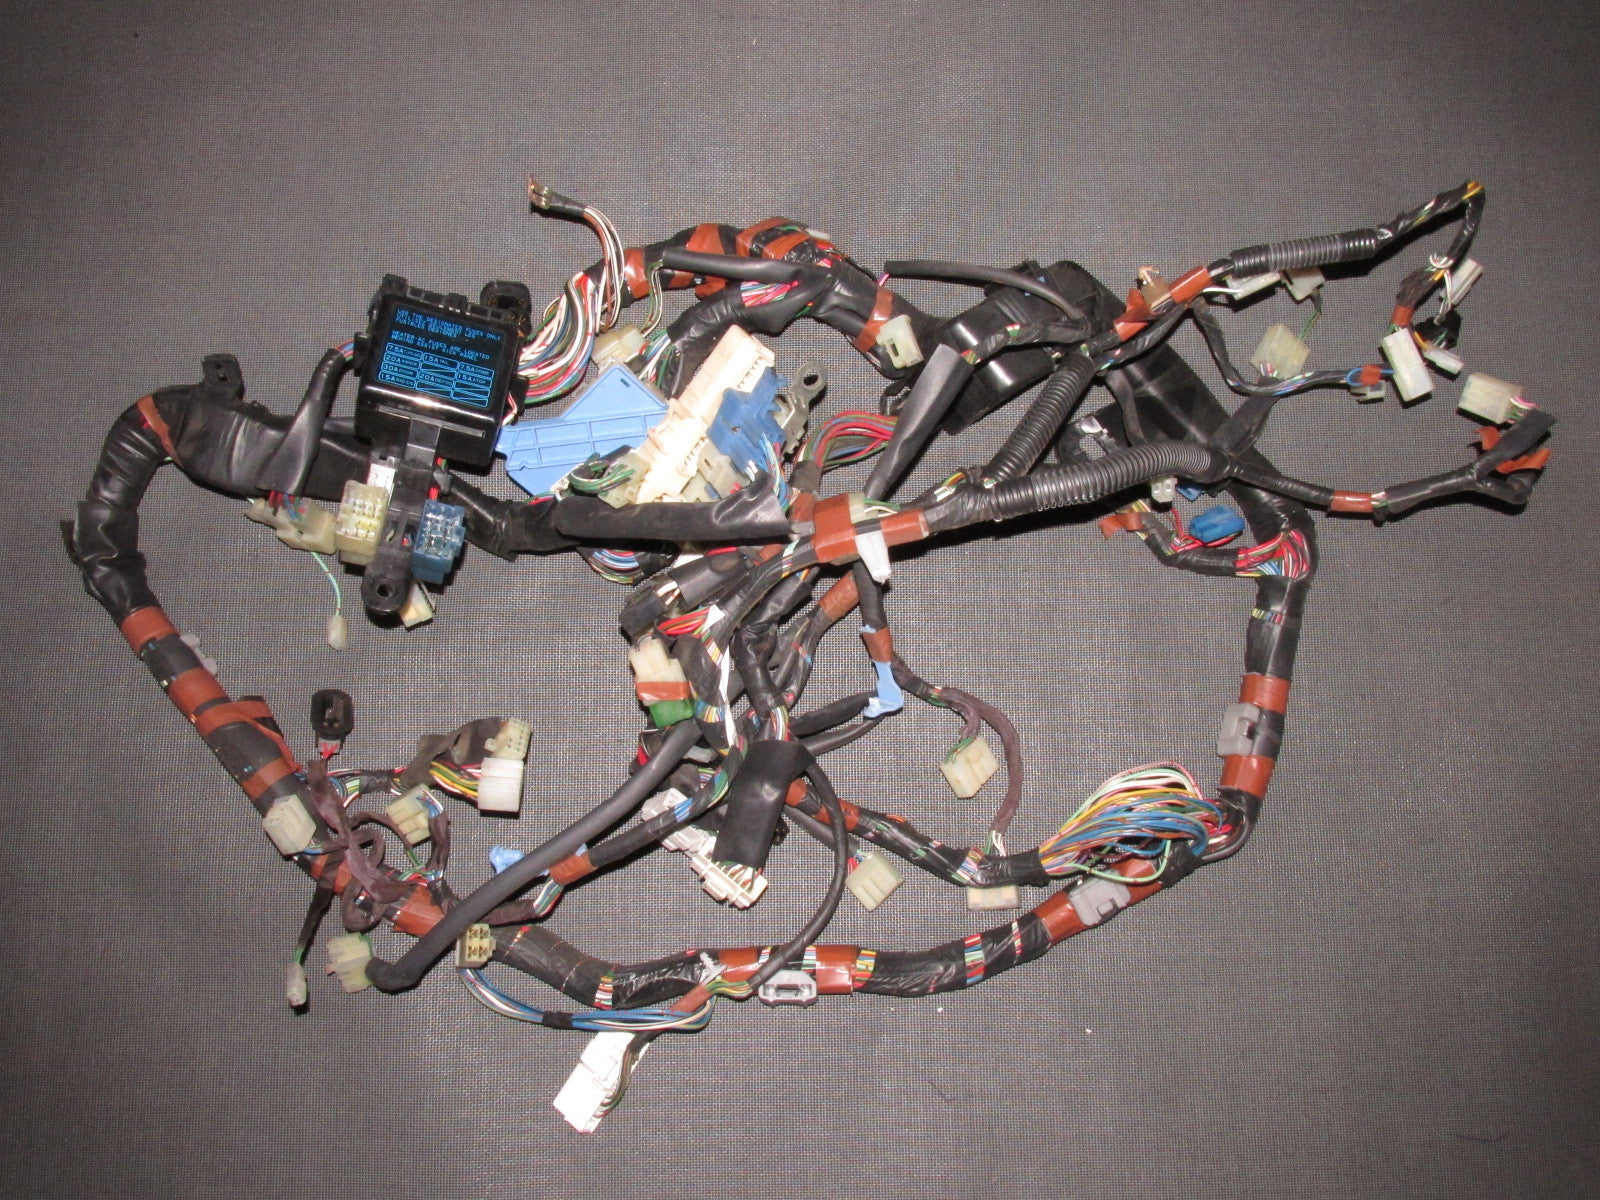 1990 Nissan 300zx Wiring Diagram Color Wire Data Schema Z31 Na Fuse Box Harness Panel Chrysler New Yorker Owners Manual